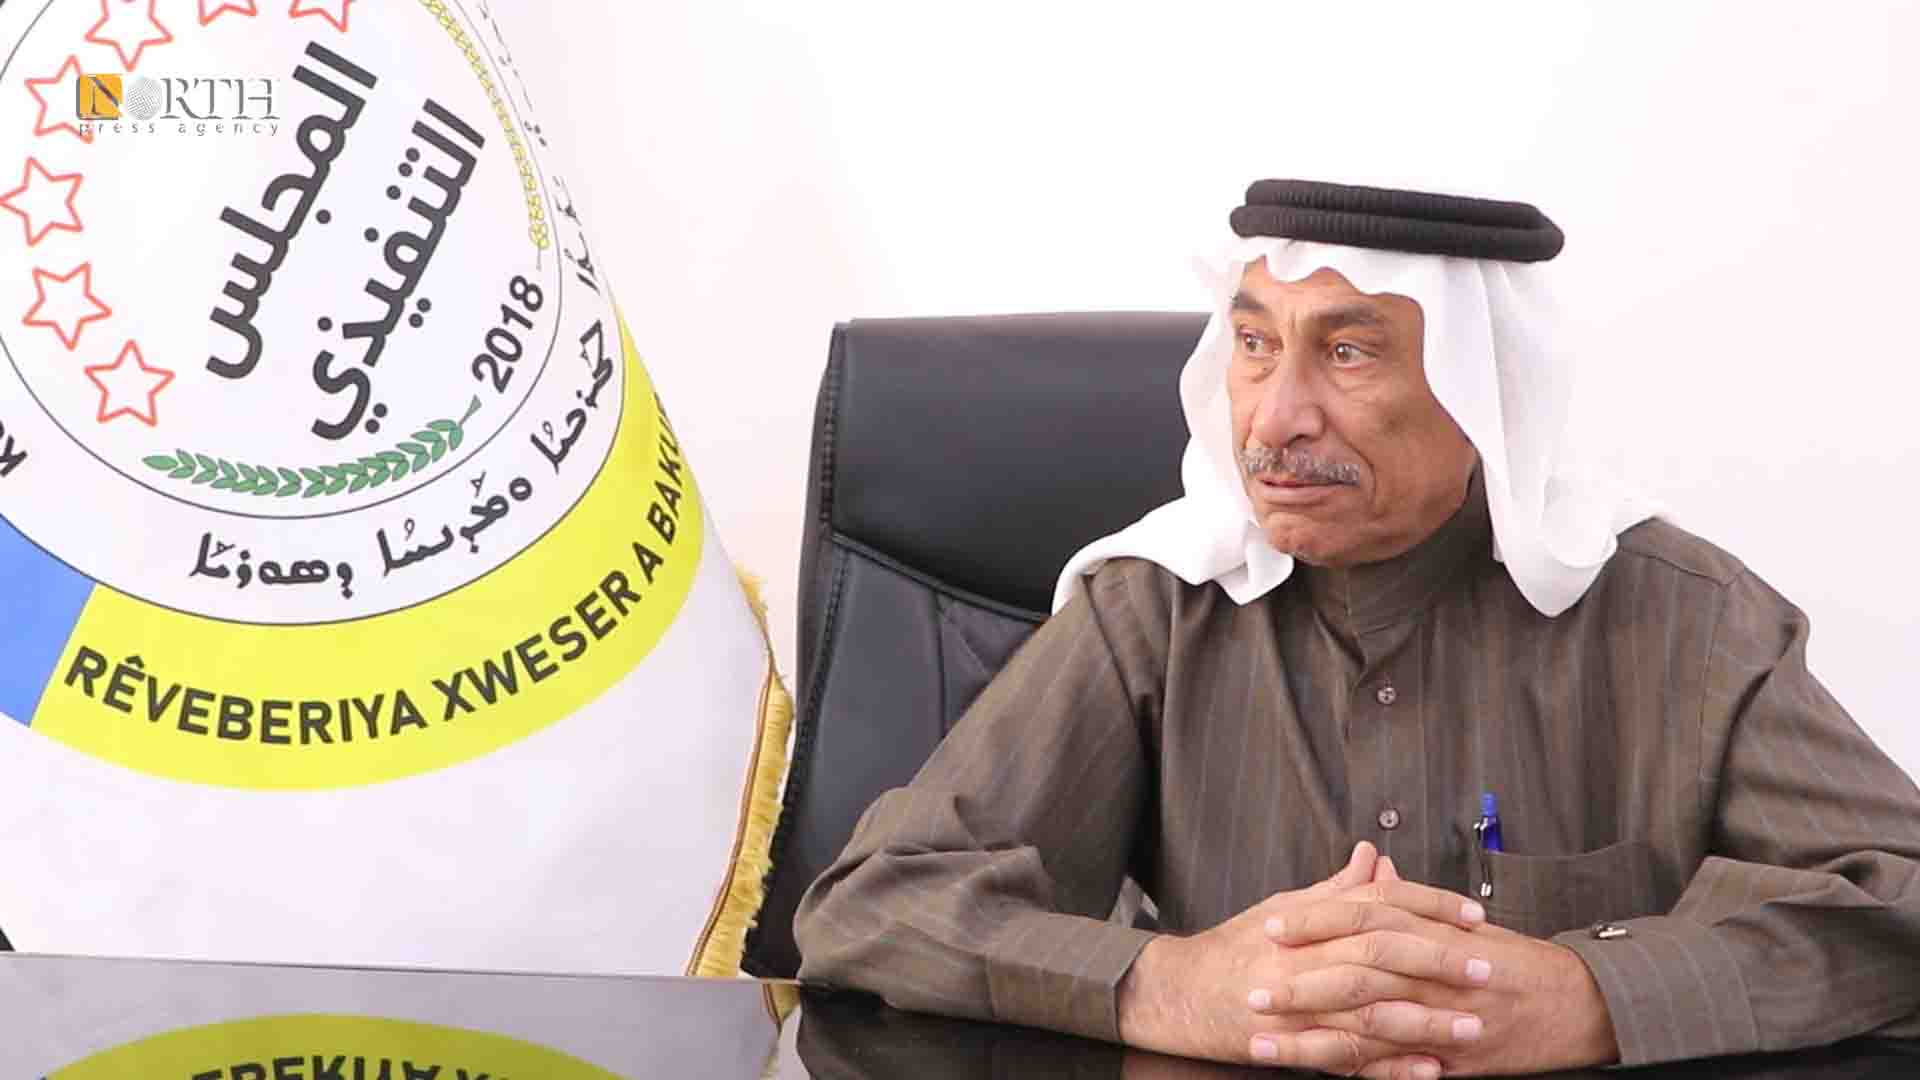 Raqqa - The deputy co-chair of the Executive Council for the Autonomous Administration, Hamdan al-Abed